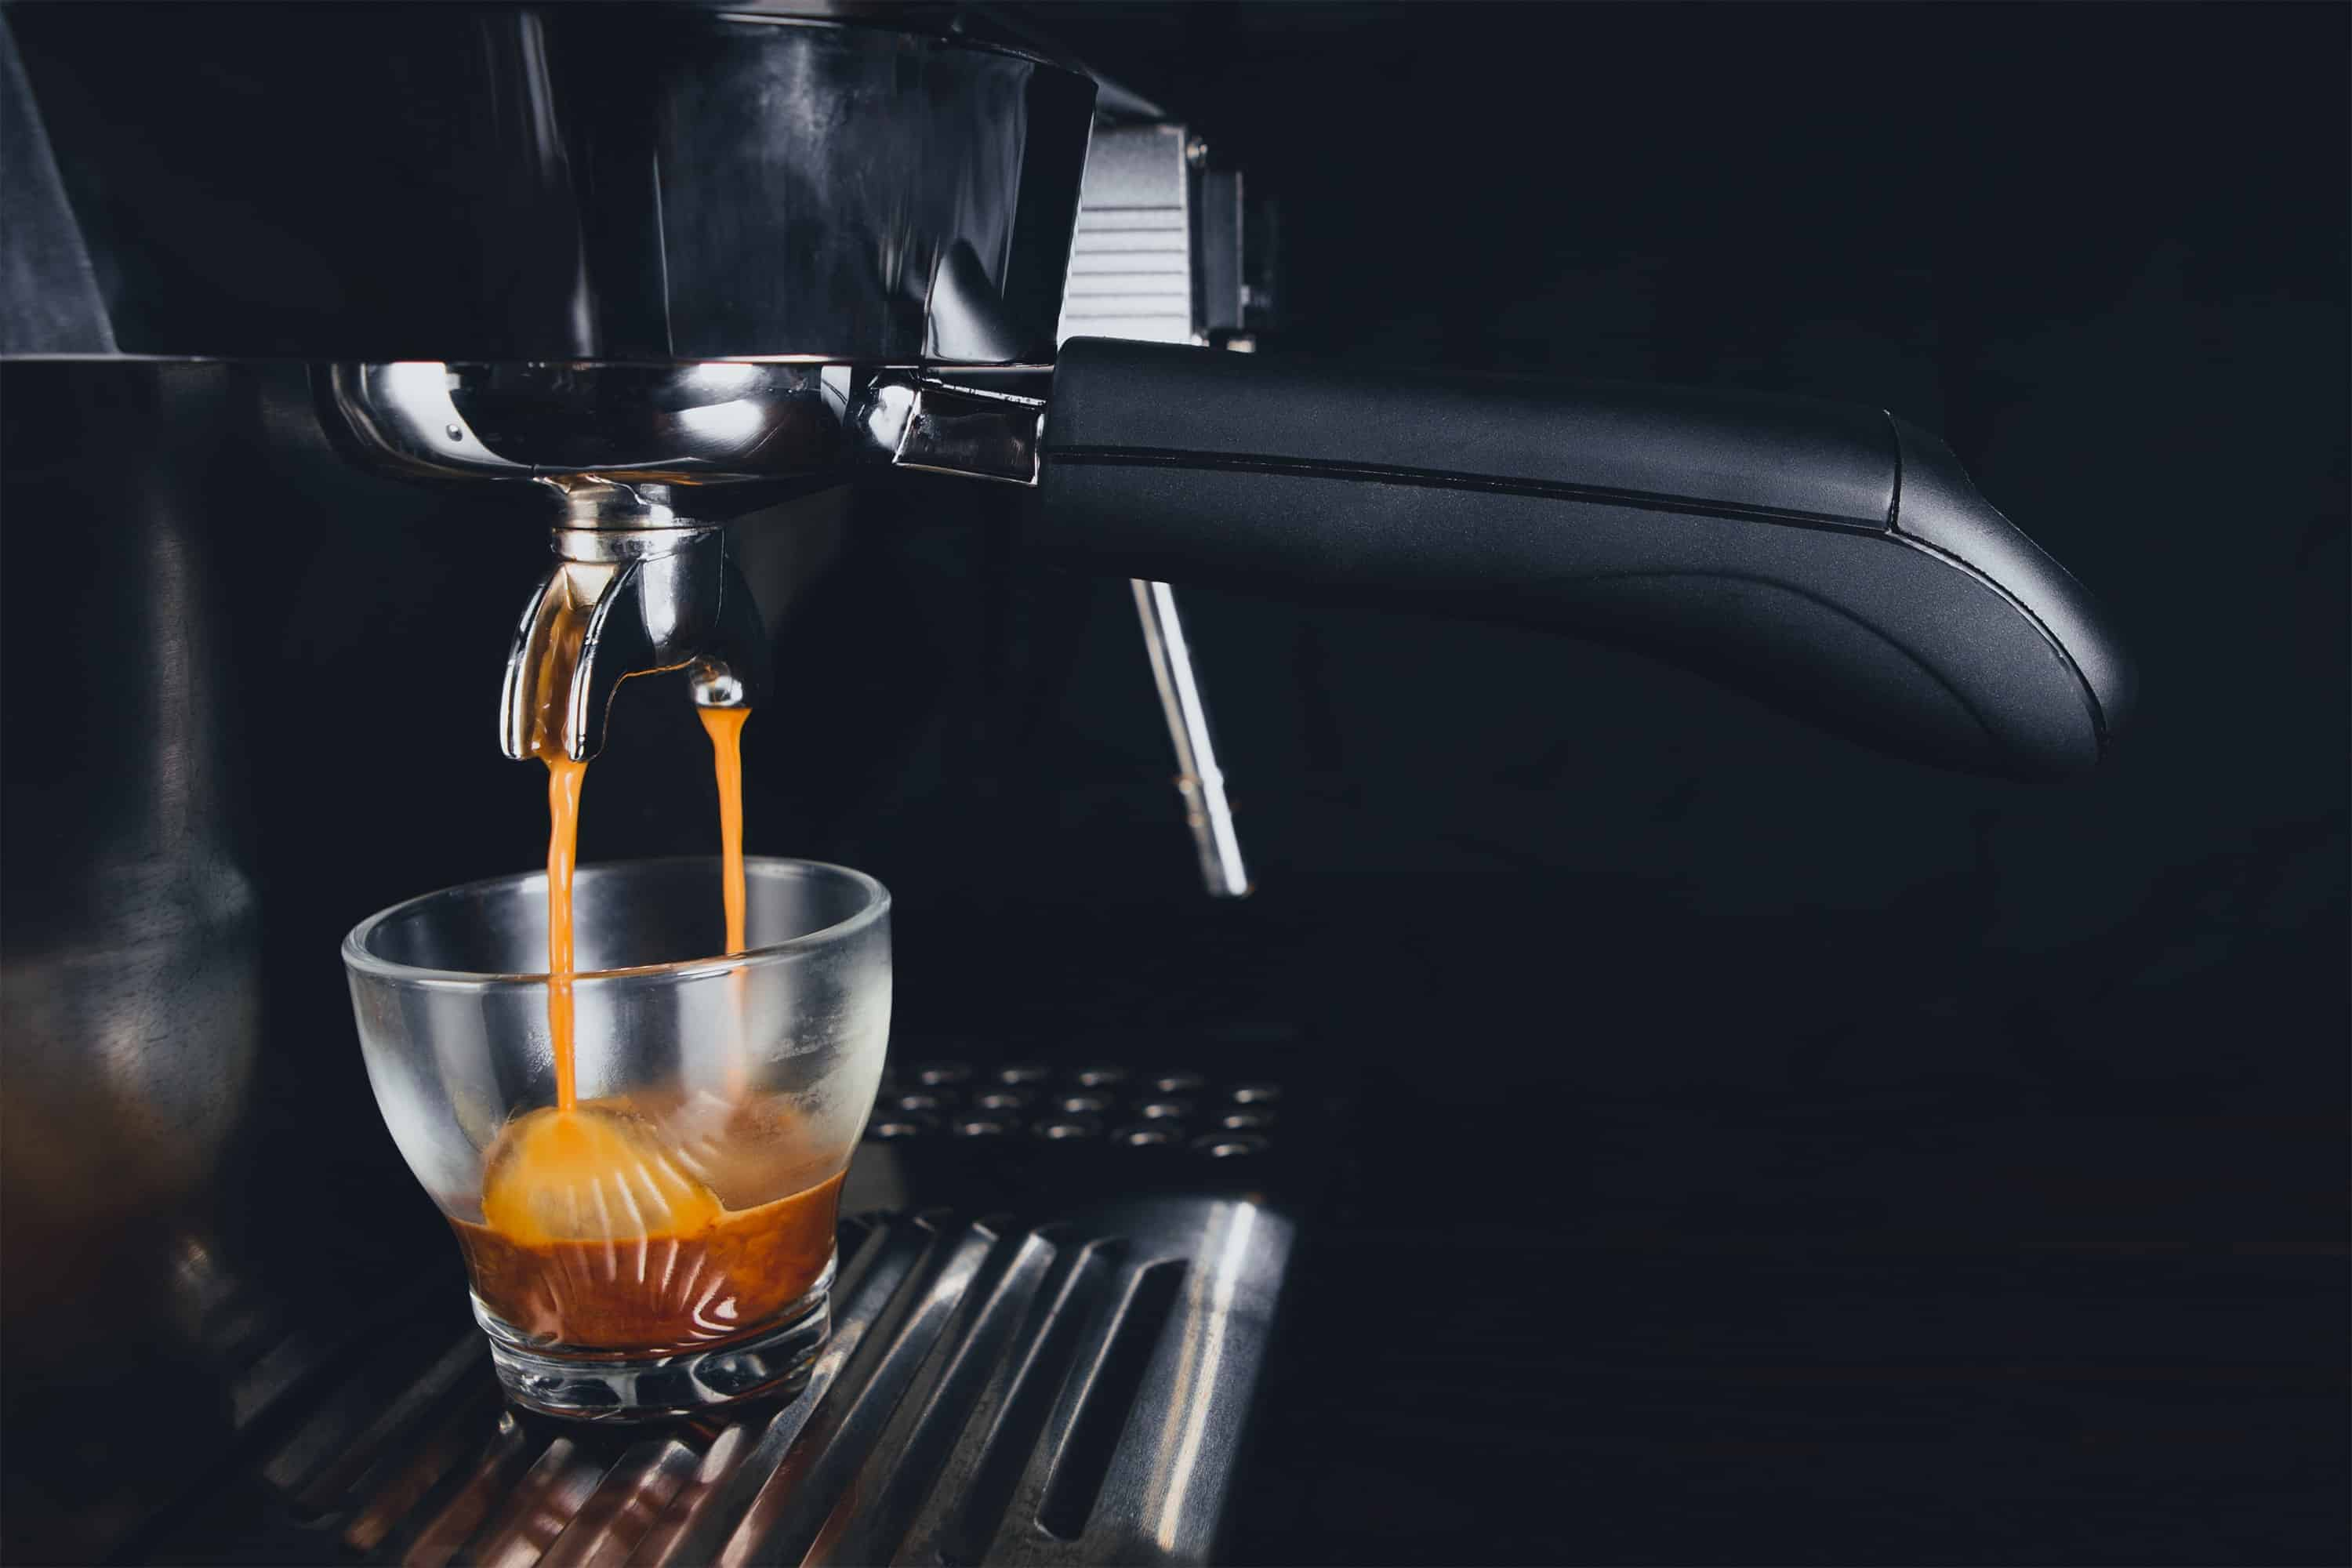 Best Espresso Machine for under $200